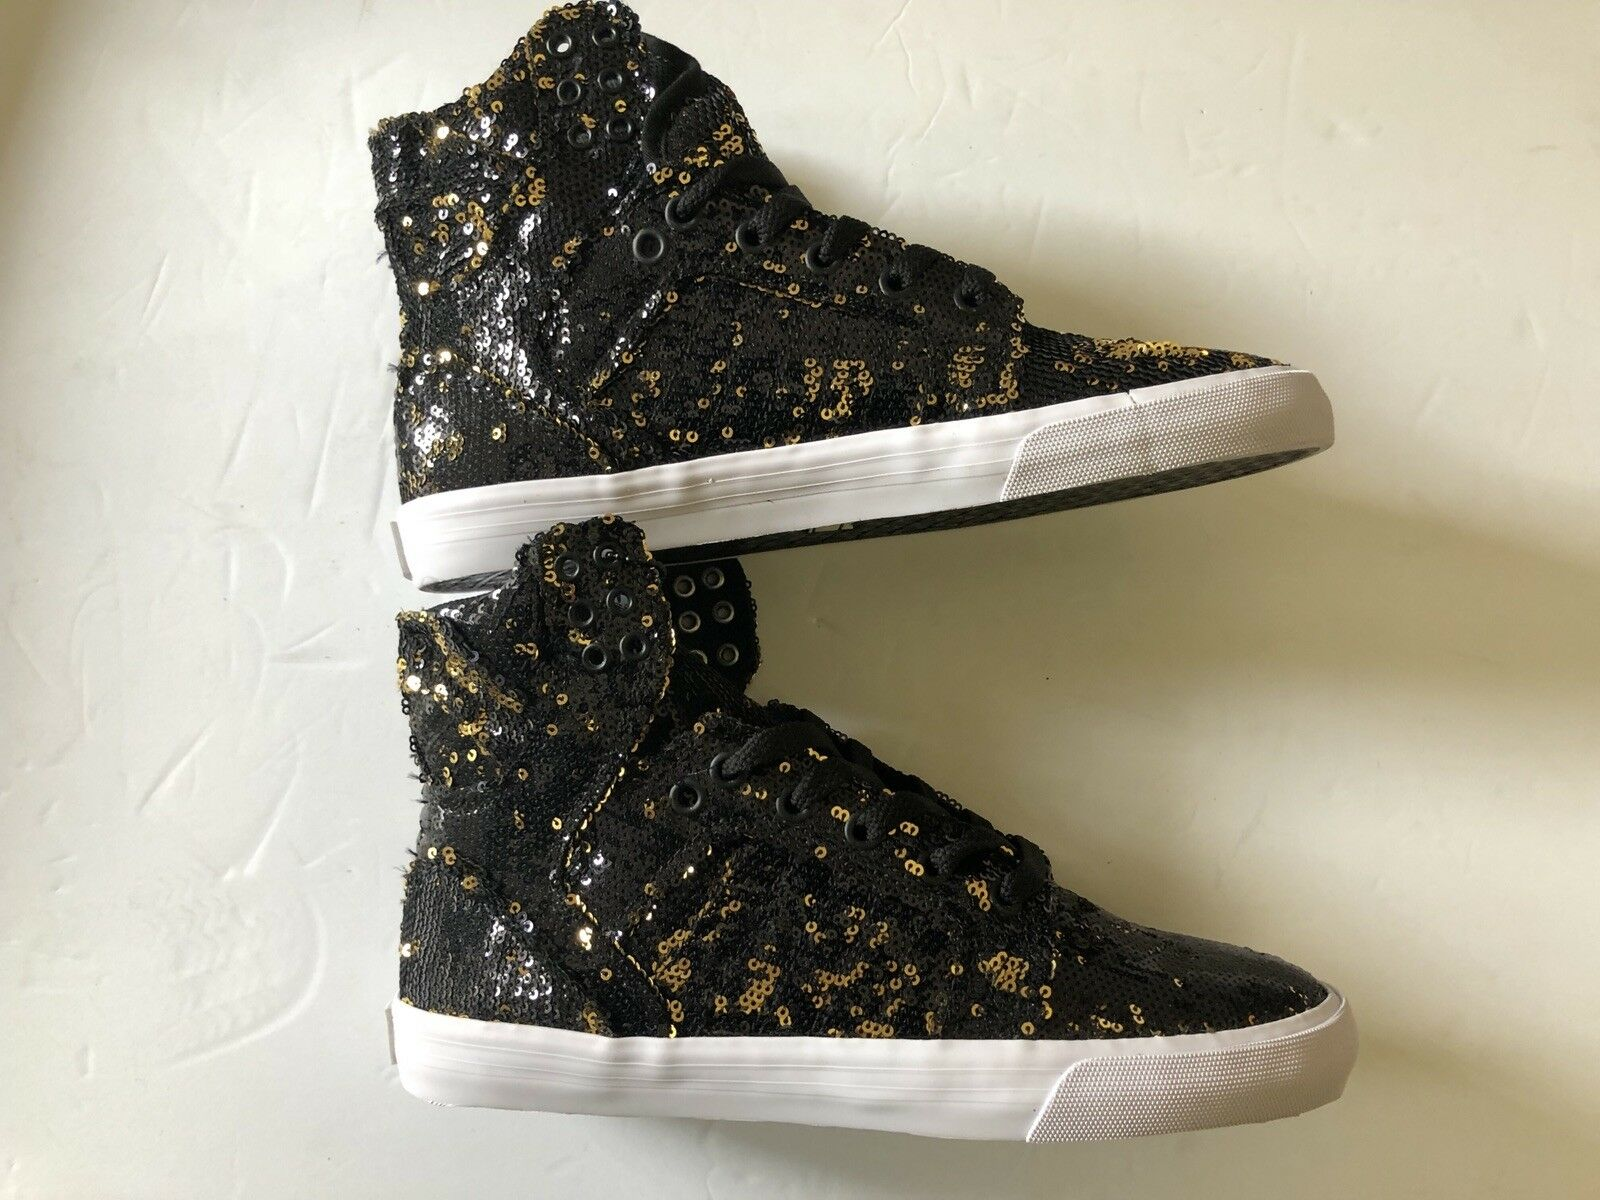 To acquire Supra x a-morir footwear sneakers collection picture trends